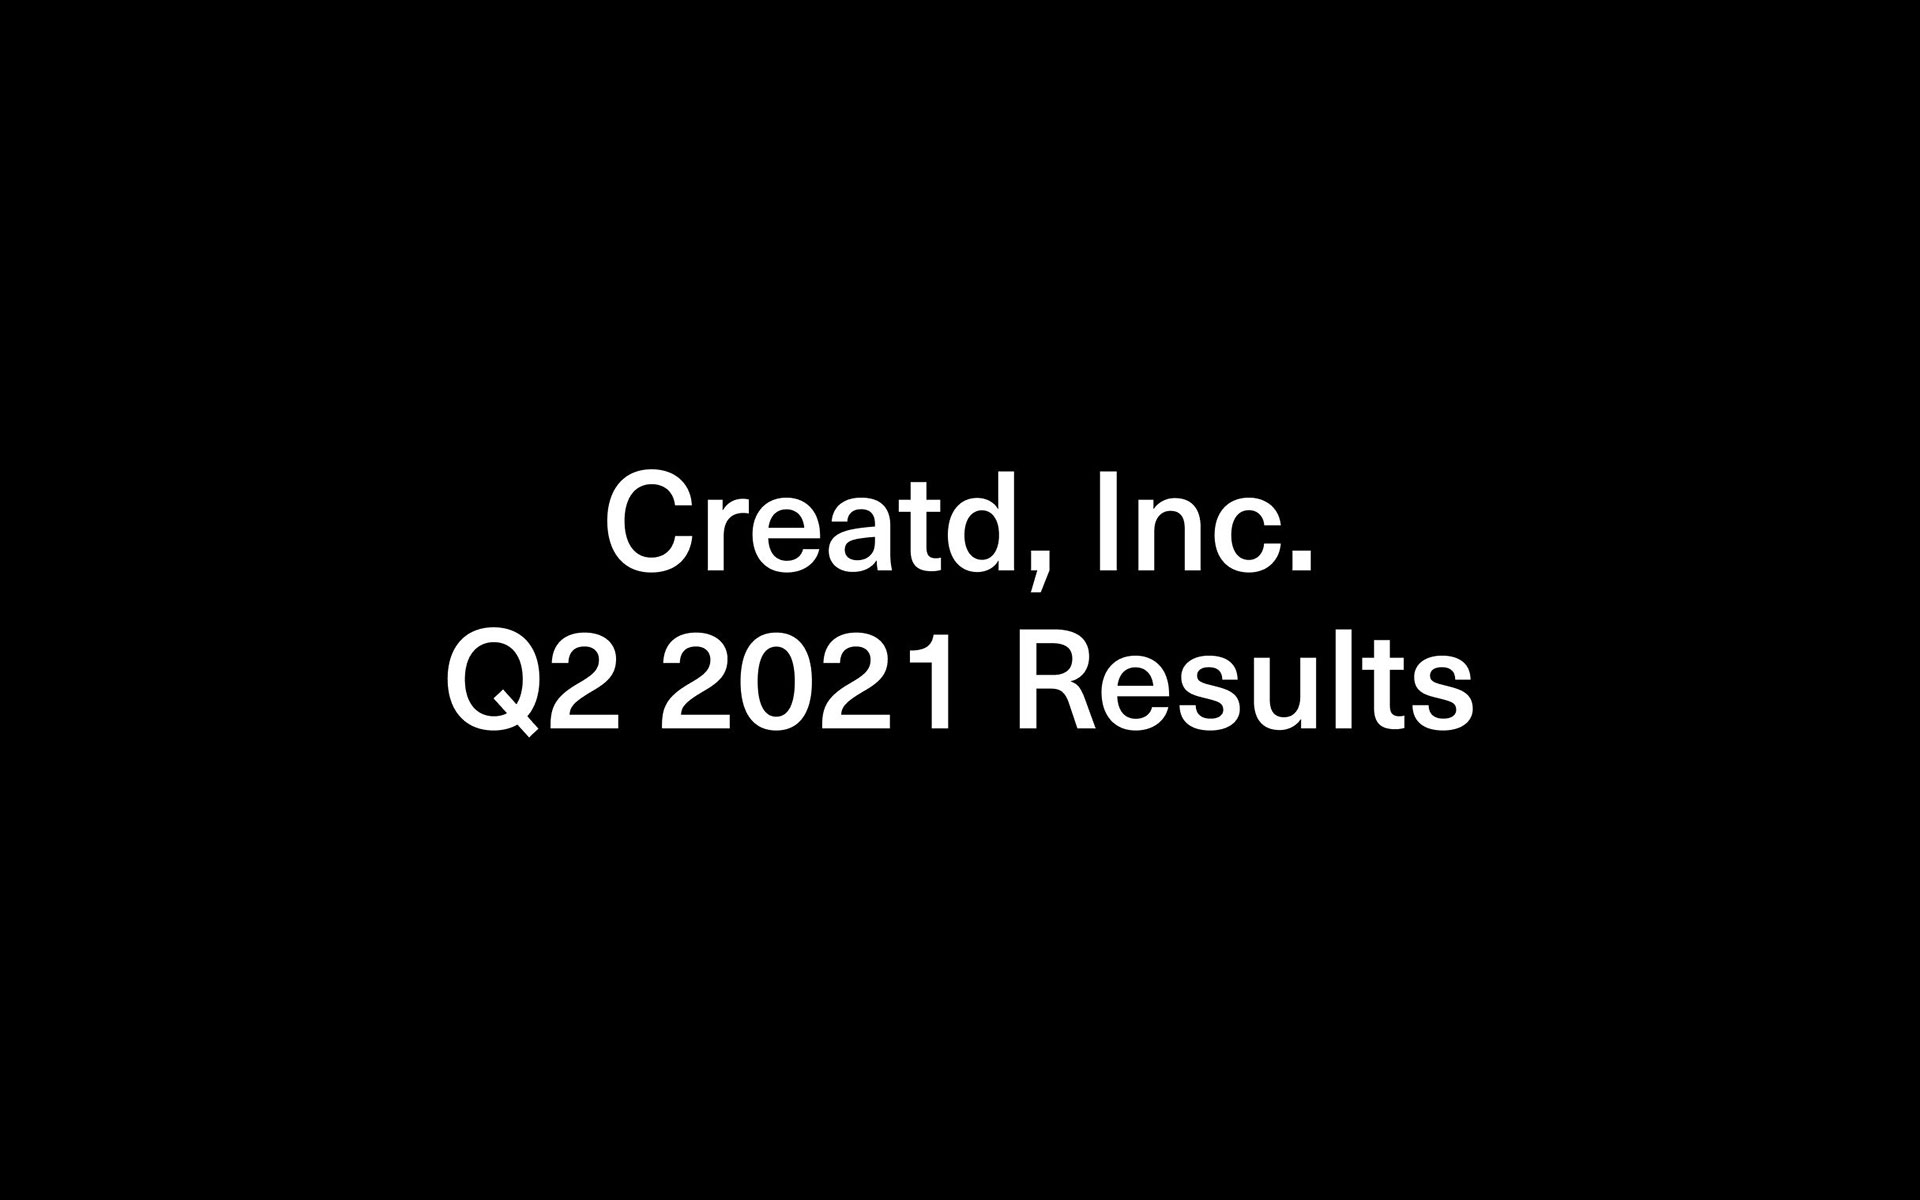 Creatd, Inc. Reports Record Second Quarter and First Half 2021 Financial Results